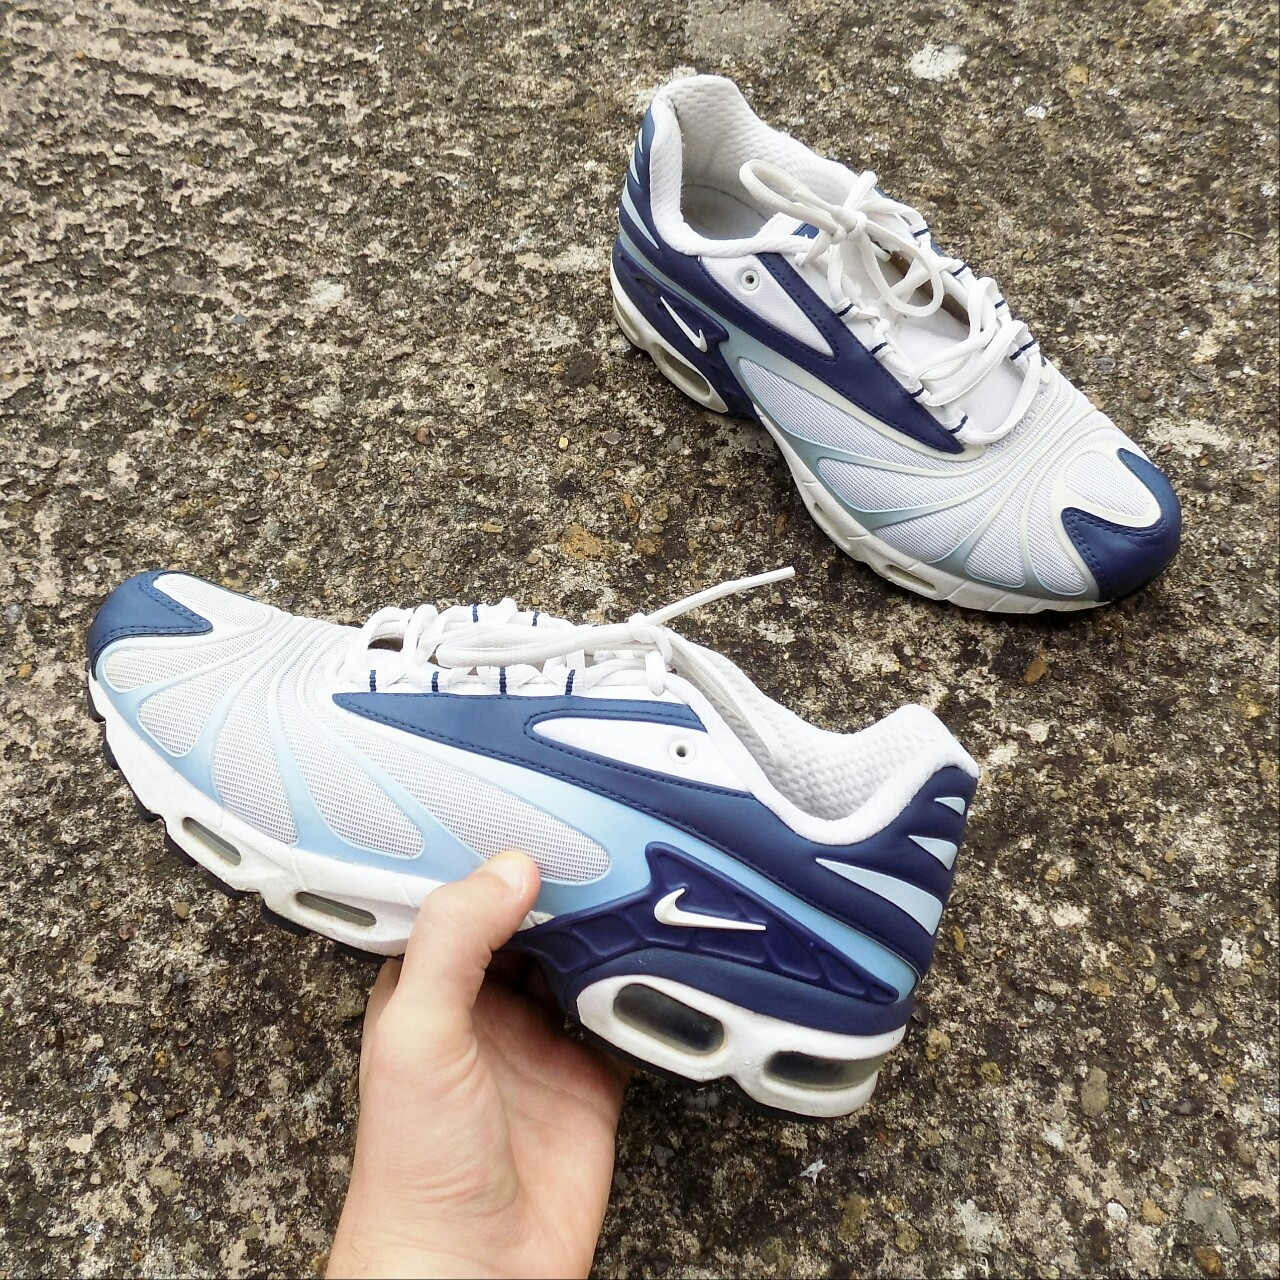 competitive price bc14c 5b162 2006 Nike Air Max TN Tailwind 5 plus in blue/white.... - Depop